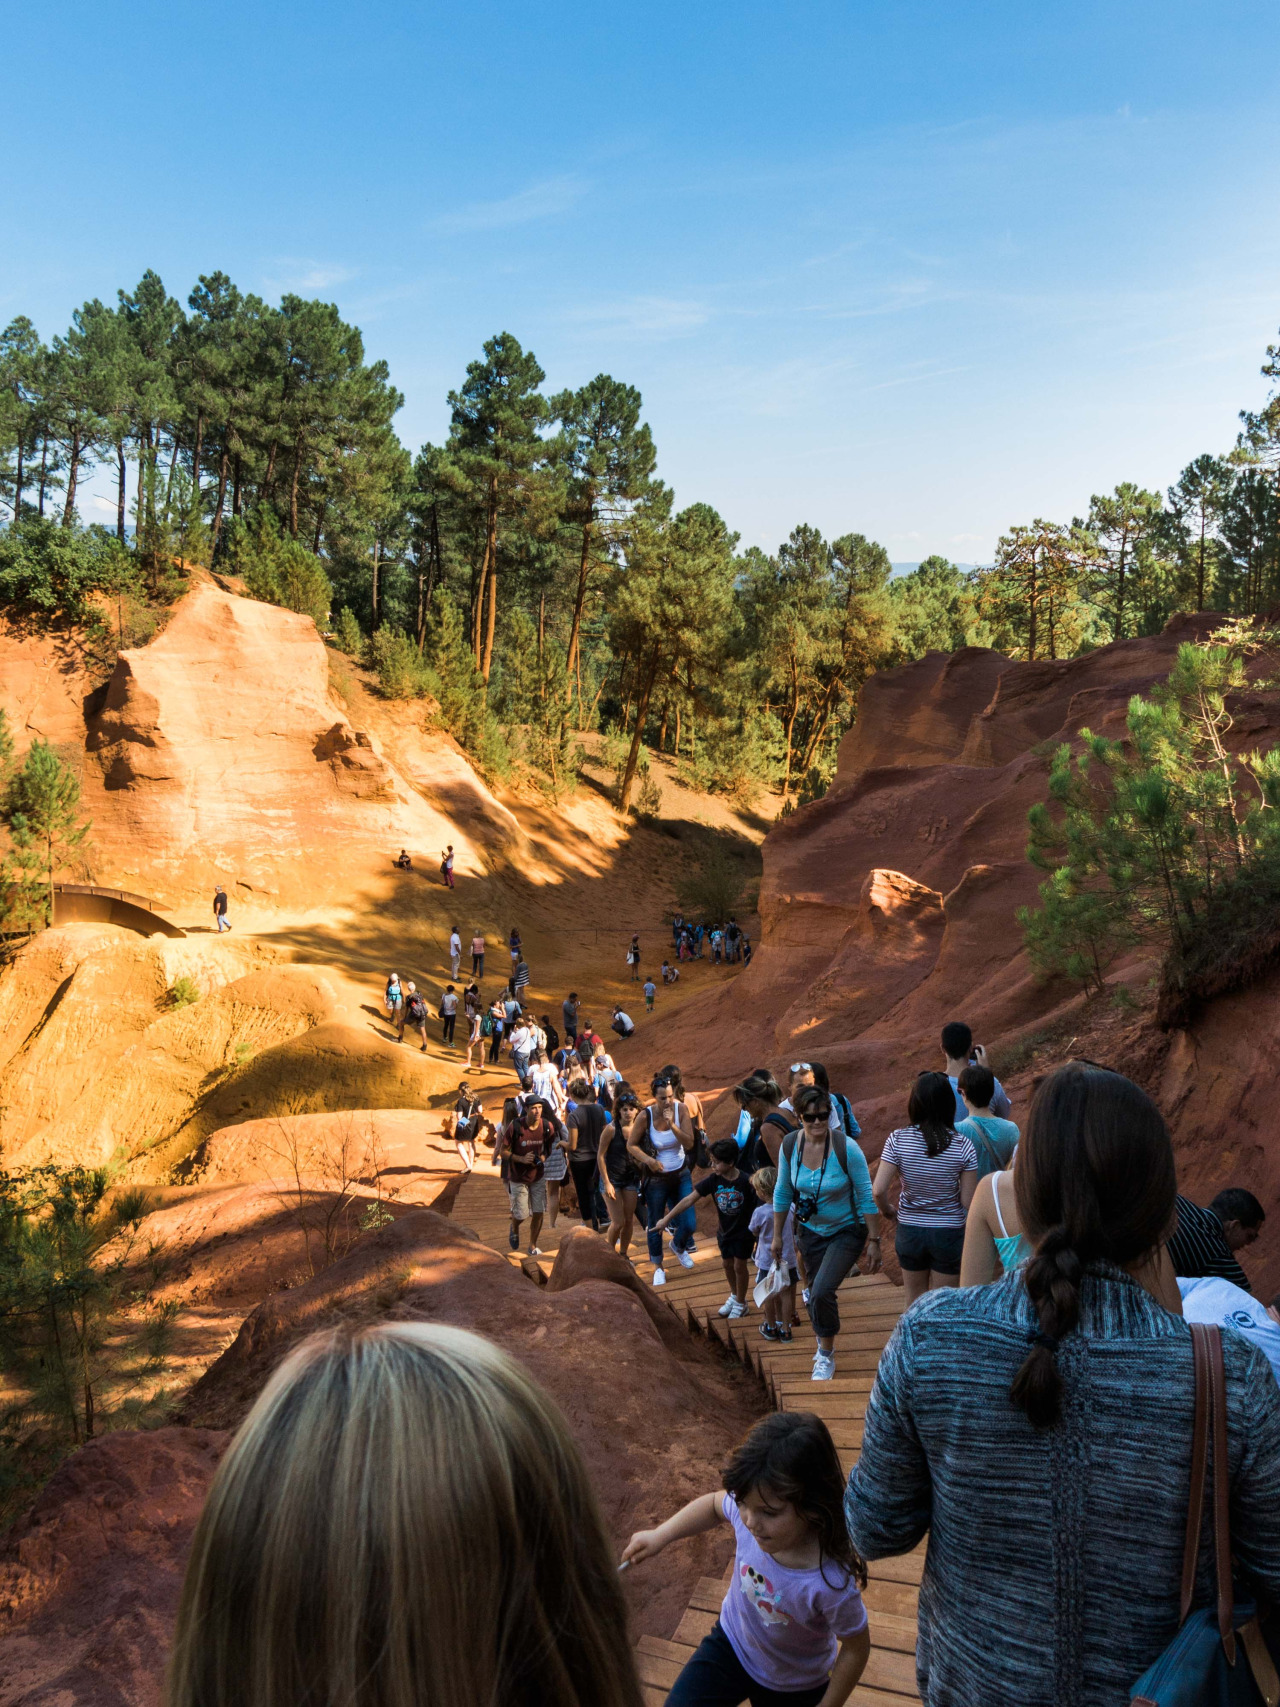 Les Sentiers des Ocres de Roussillon  (The Ochre Footpath of Roussillon)    September 28, 2014    With crazy weather and red dirt, Provence might as well be Oklahoma.